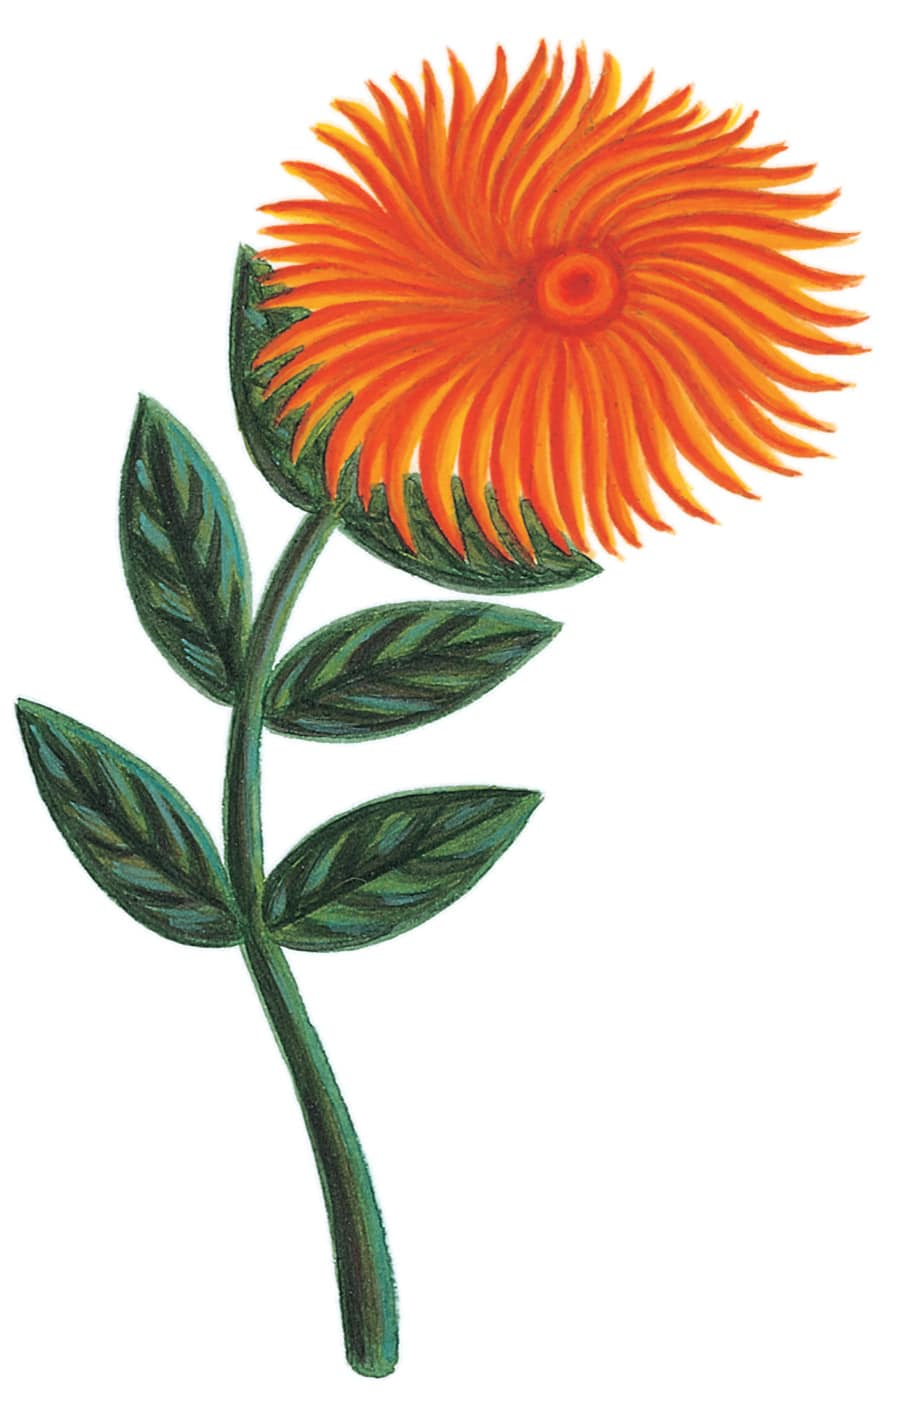 Illustration 8 'A flower opens its heart to Henri Rousseau' (Pixel dimensions available w744 x h1163)